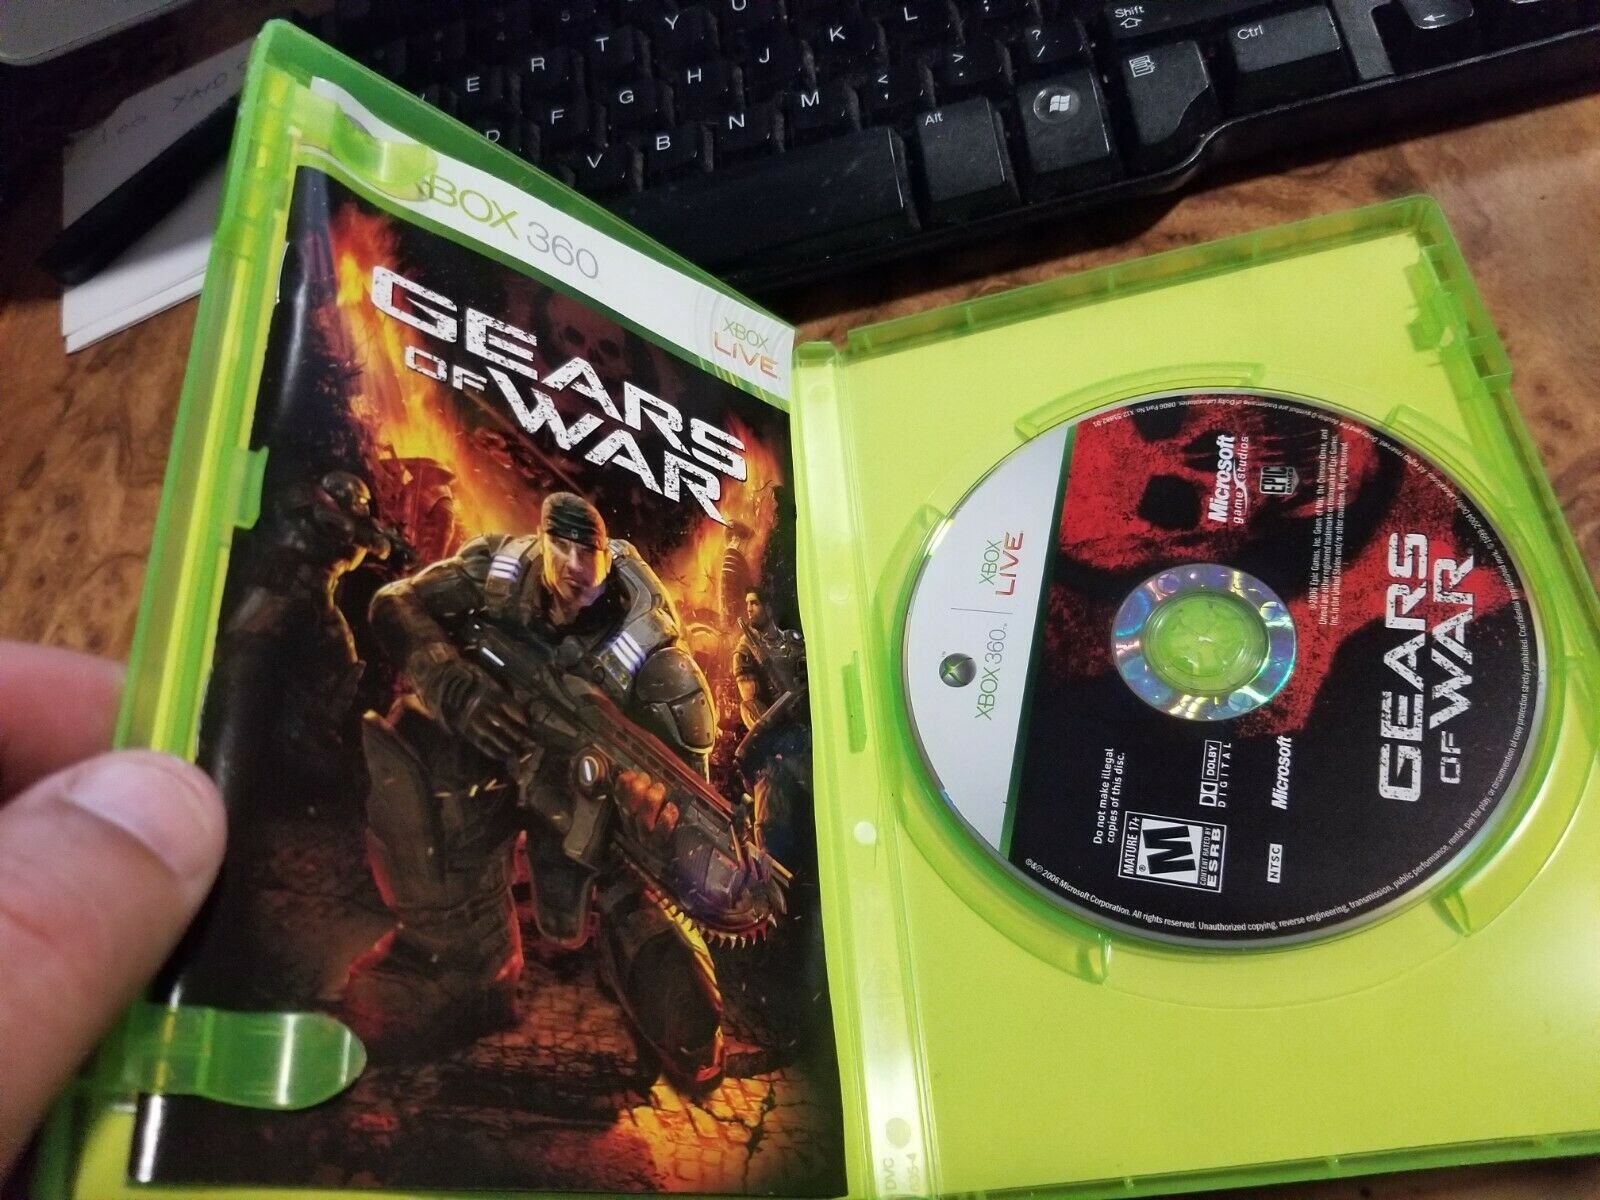 Gears of War (Microsoft Xbox 360, 2006) in box with instructions image 2